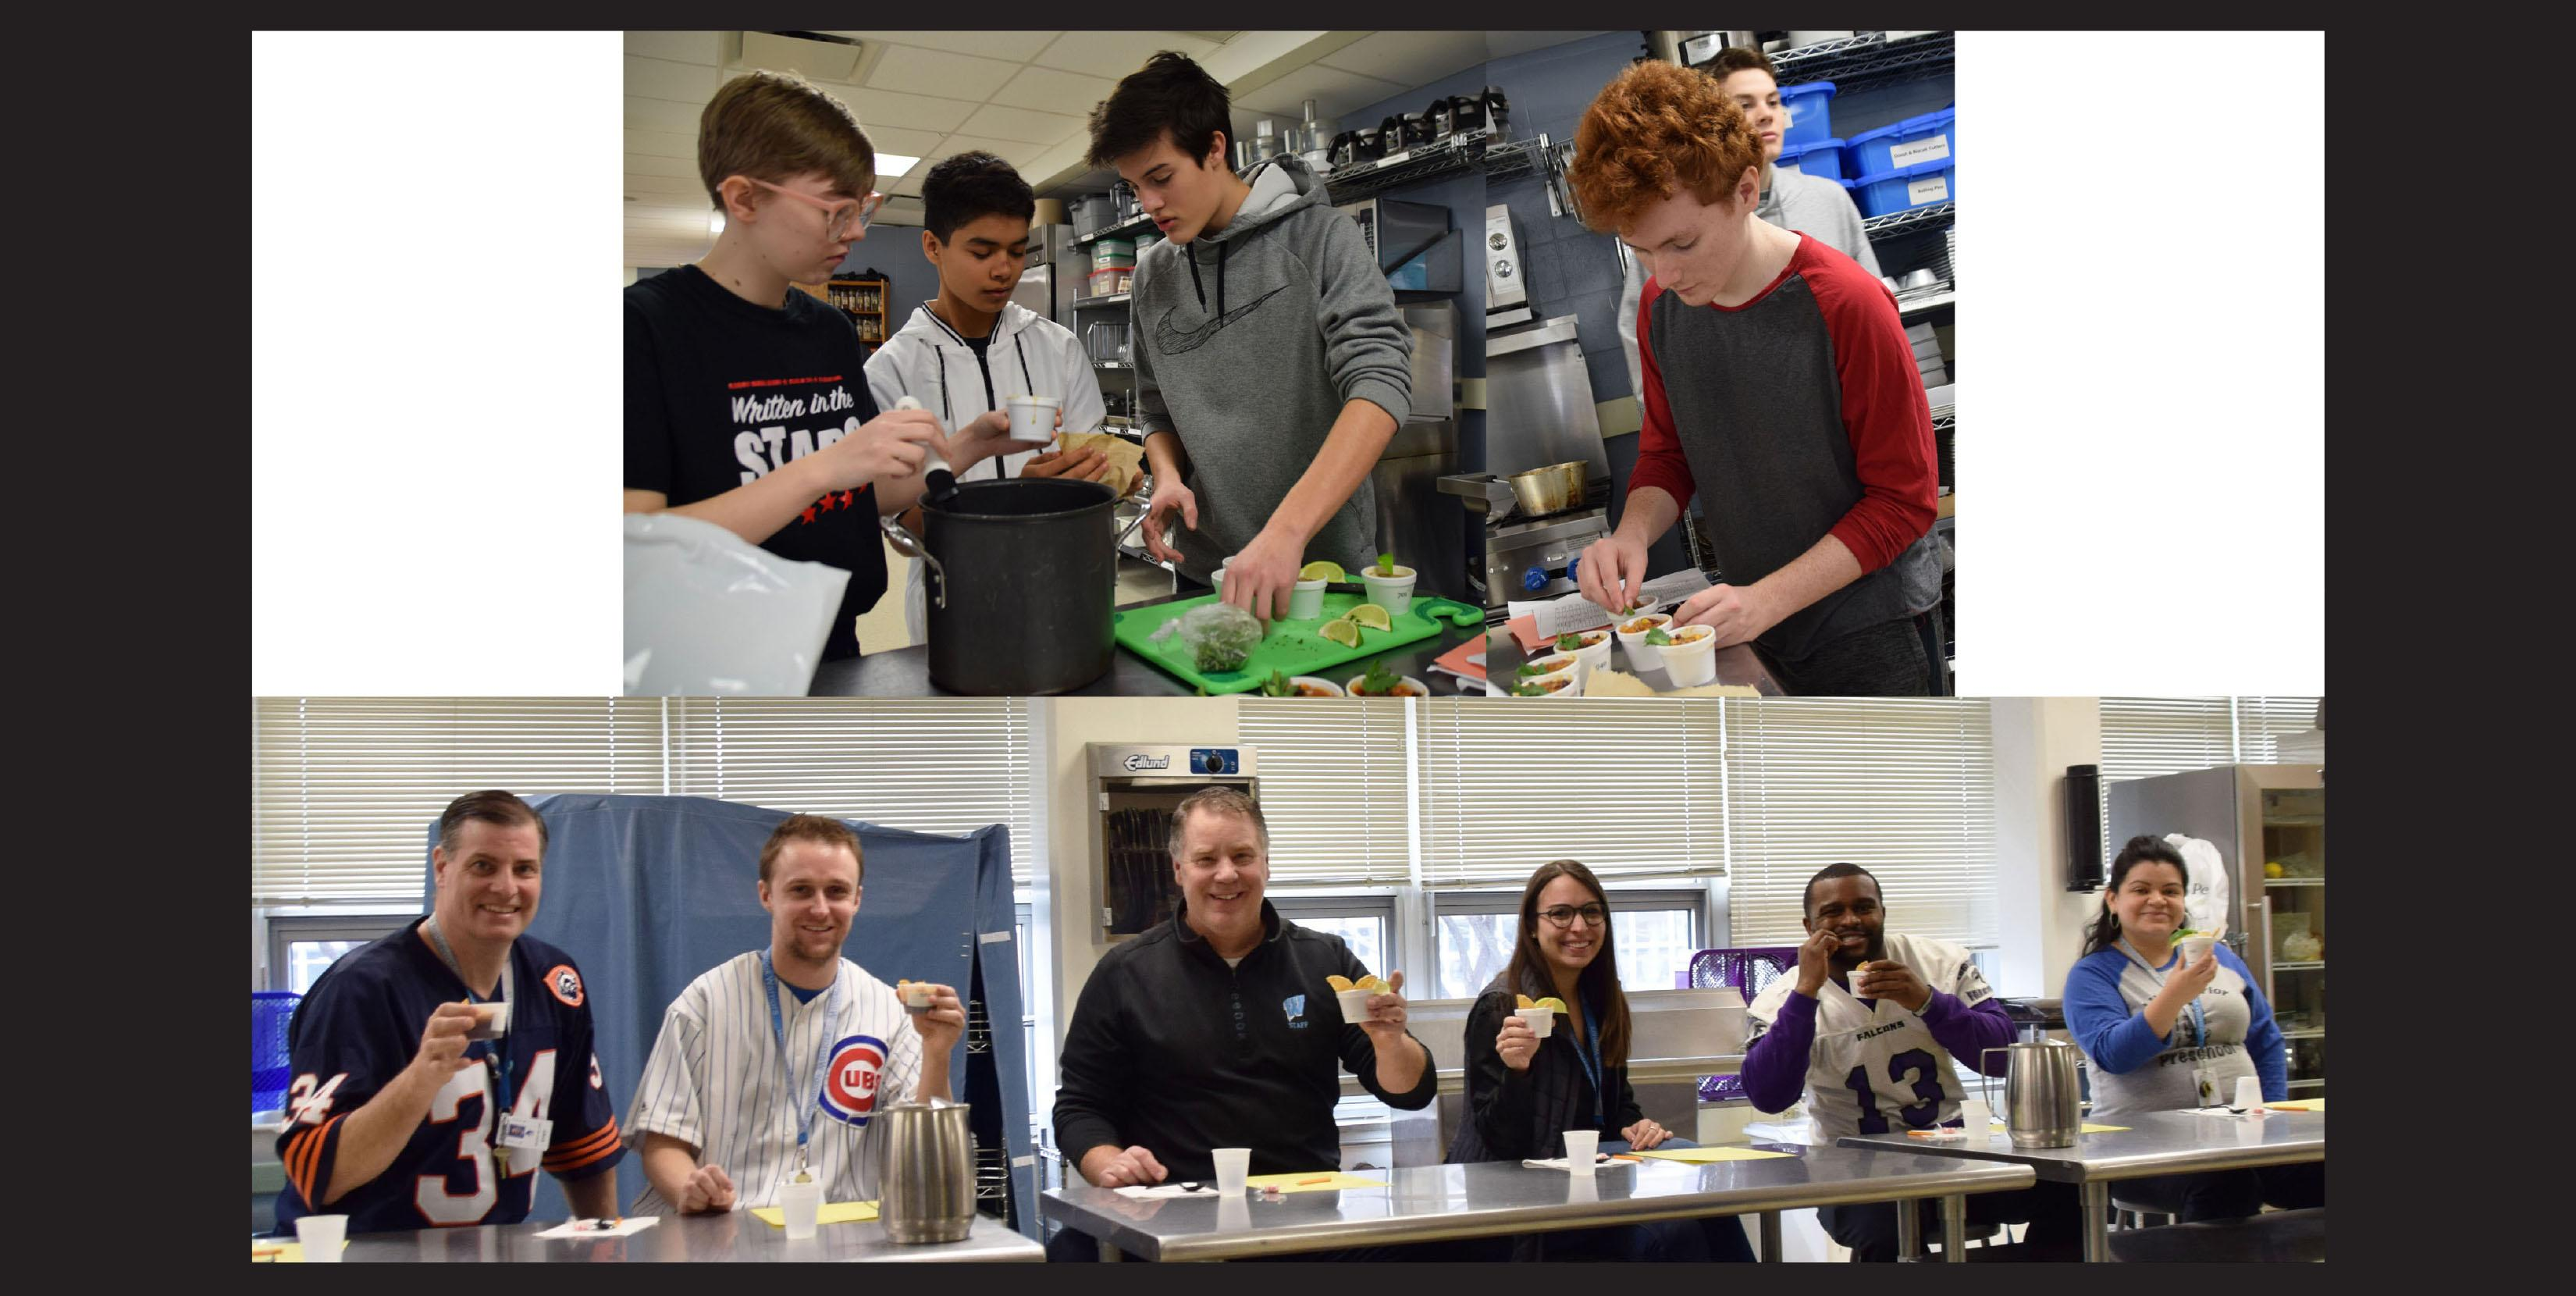 Willowbrook students compete in Chili Cook-Off